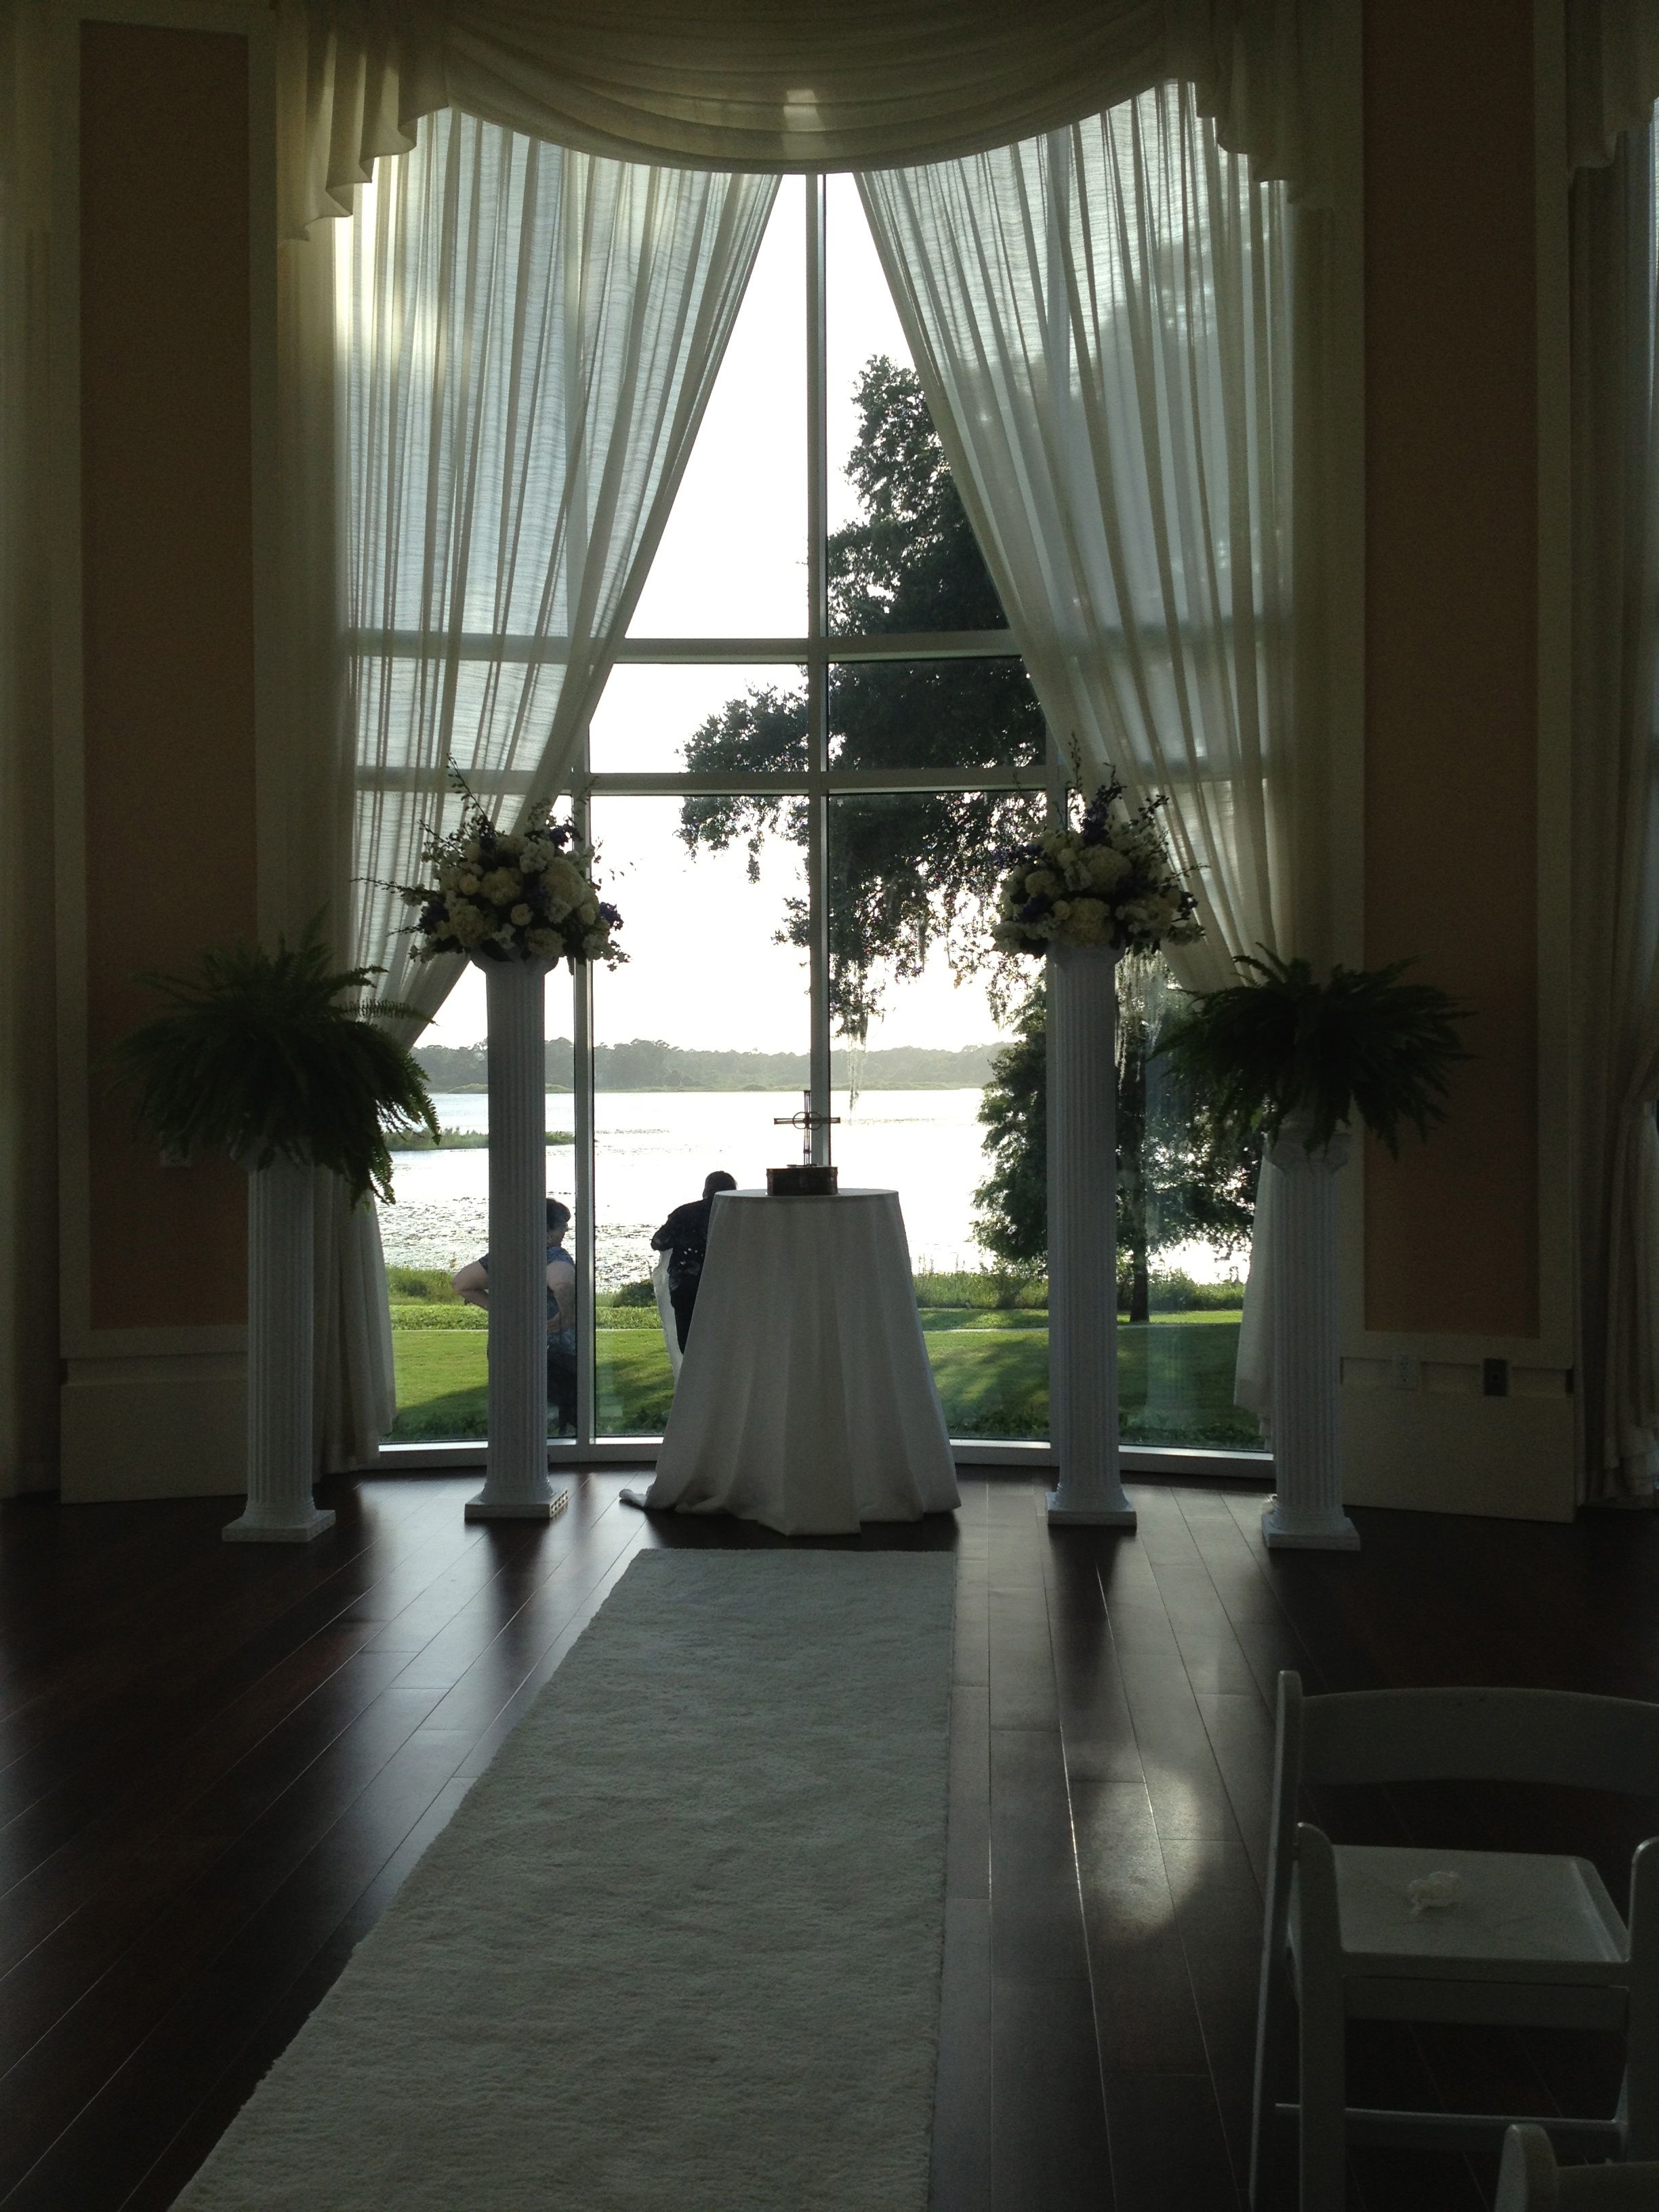 Columns ivory fabric uplighting wedding ceremony downtown double tree - Roman Columns With Flowers And Ferns Roman Columnsromansfernsfloral Arrangementswedding Ceremonyreceptionsbouquetsdecorflowers